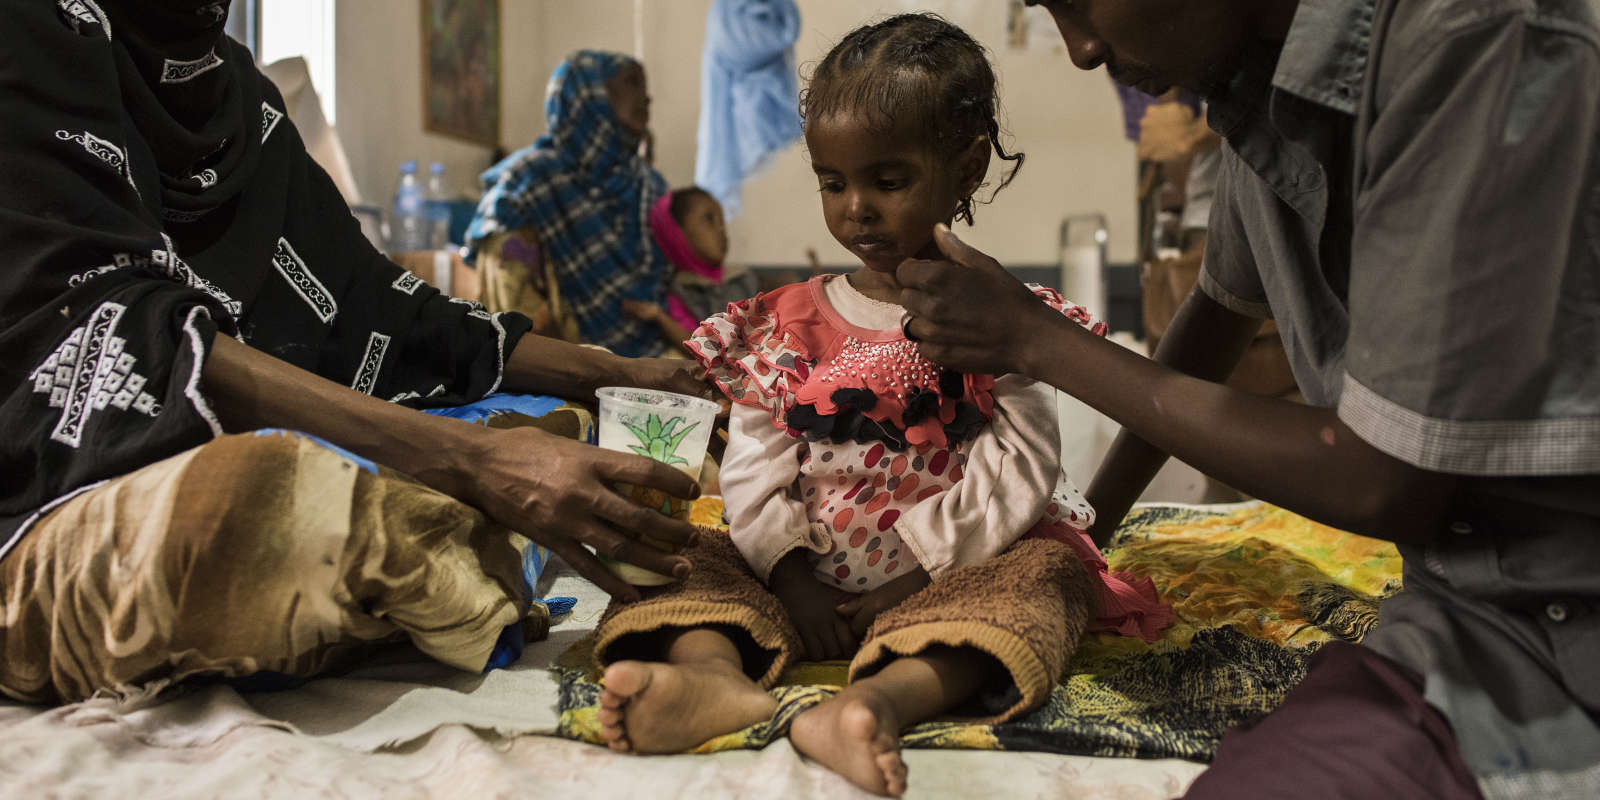 SOMALIA. Somaliland. Borama. March 21, 2017. Dagan Qaalib, 4, sits with her mother and father at the malnutrition clinic in Borama hospital. She was admitted to the hospital at weight of 7.1 kilograms and is suffering from severe acute malnutrition. Somalia is on the edge of famine as drought conditions have left 6 million people in need of food aid throughout the country.